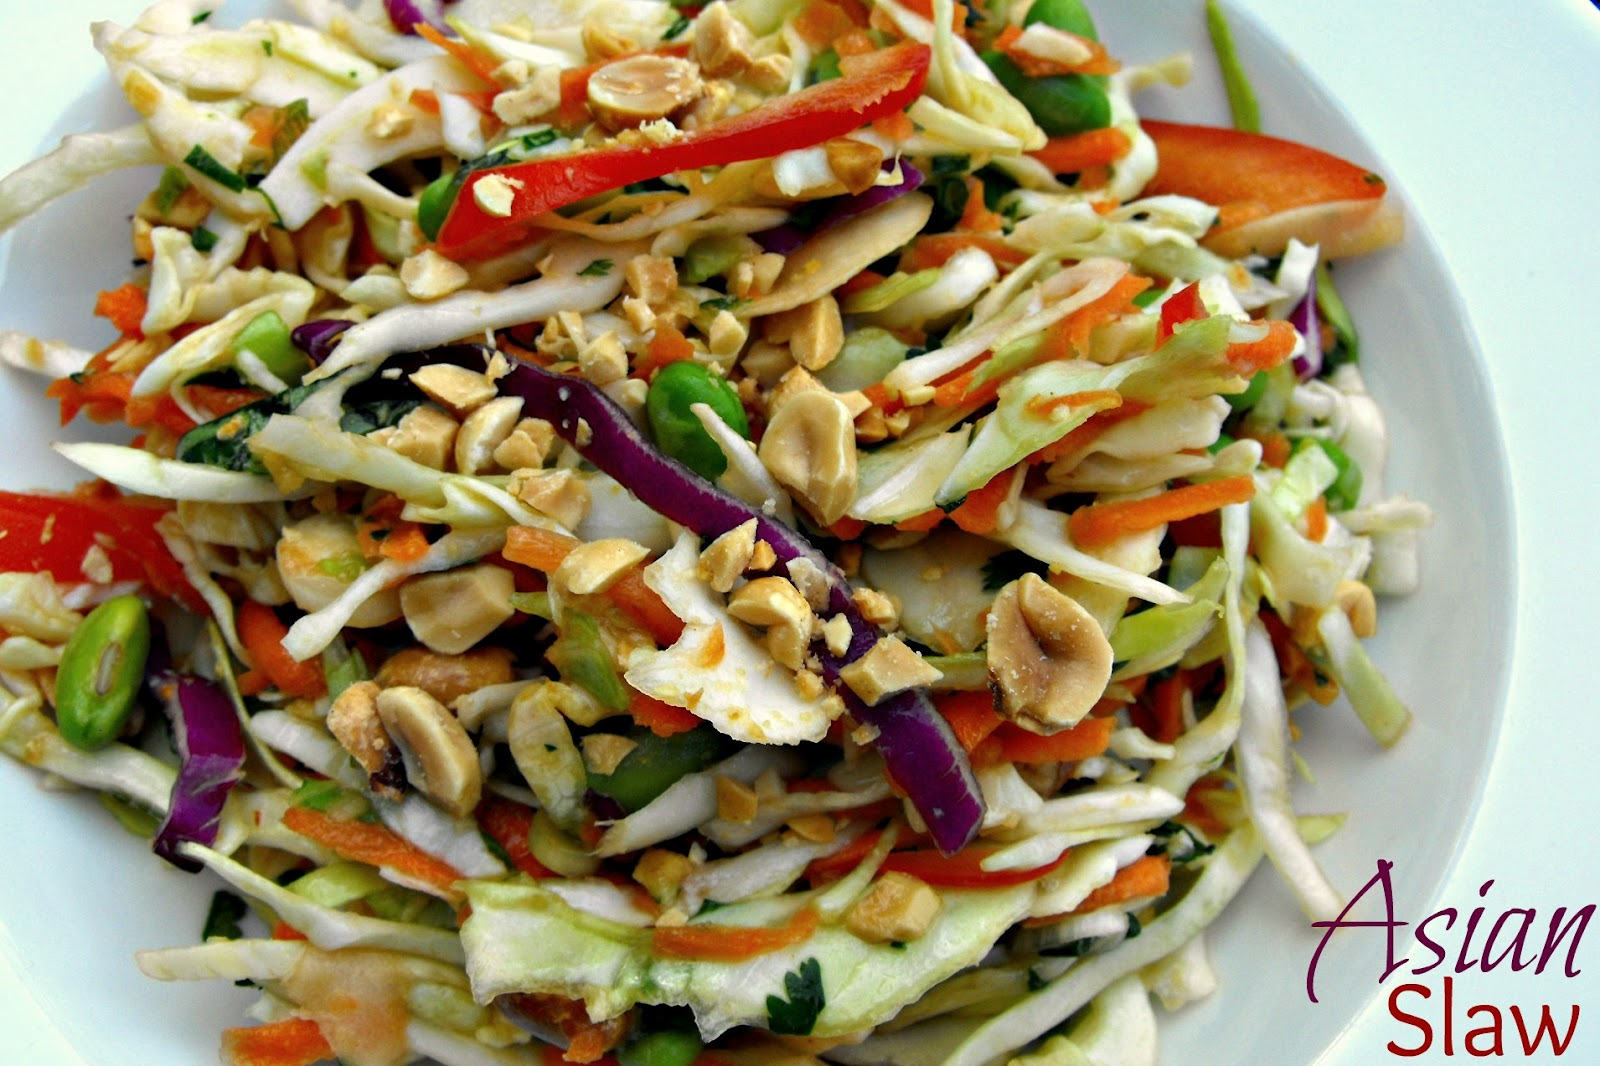 ... pin comes to life awesome asian slaw recipe can be found here